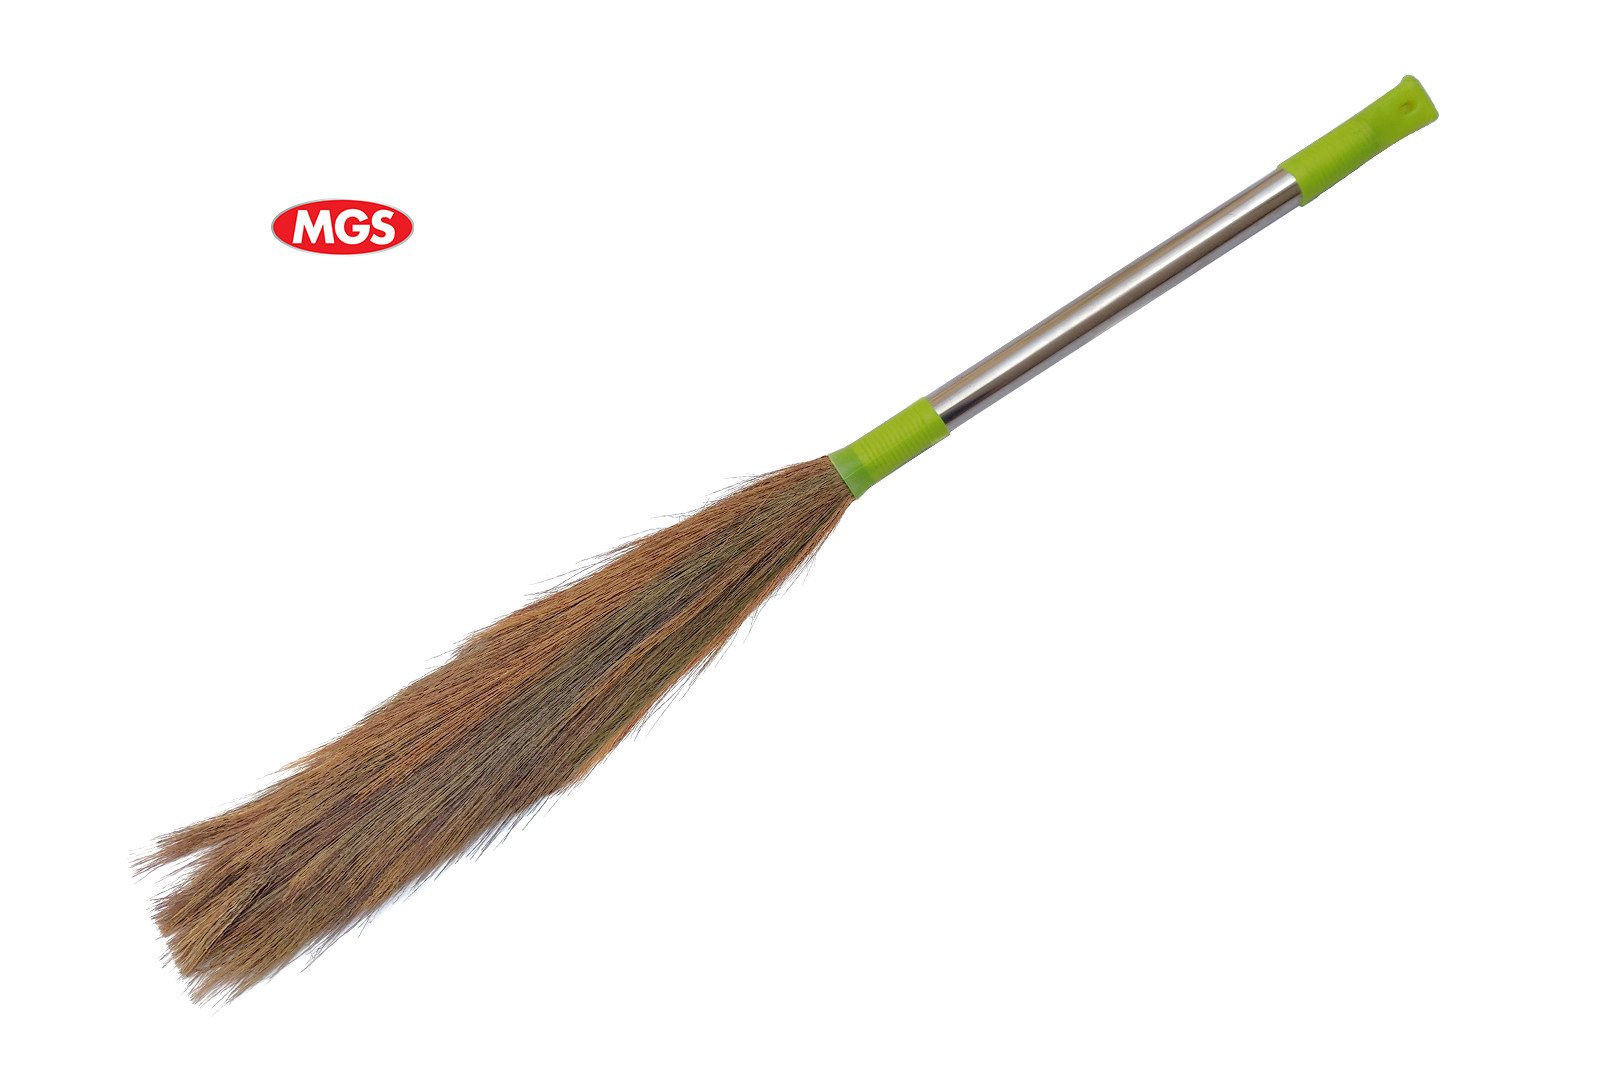 MGS Special Wiper Pipe Broom – 46 inches Soft Grass Floor Broom